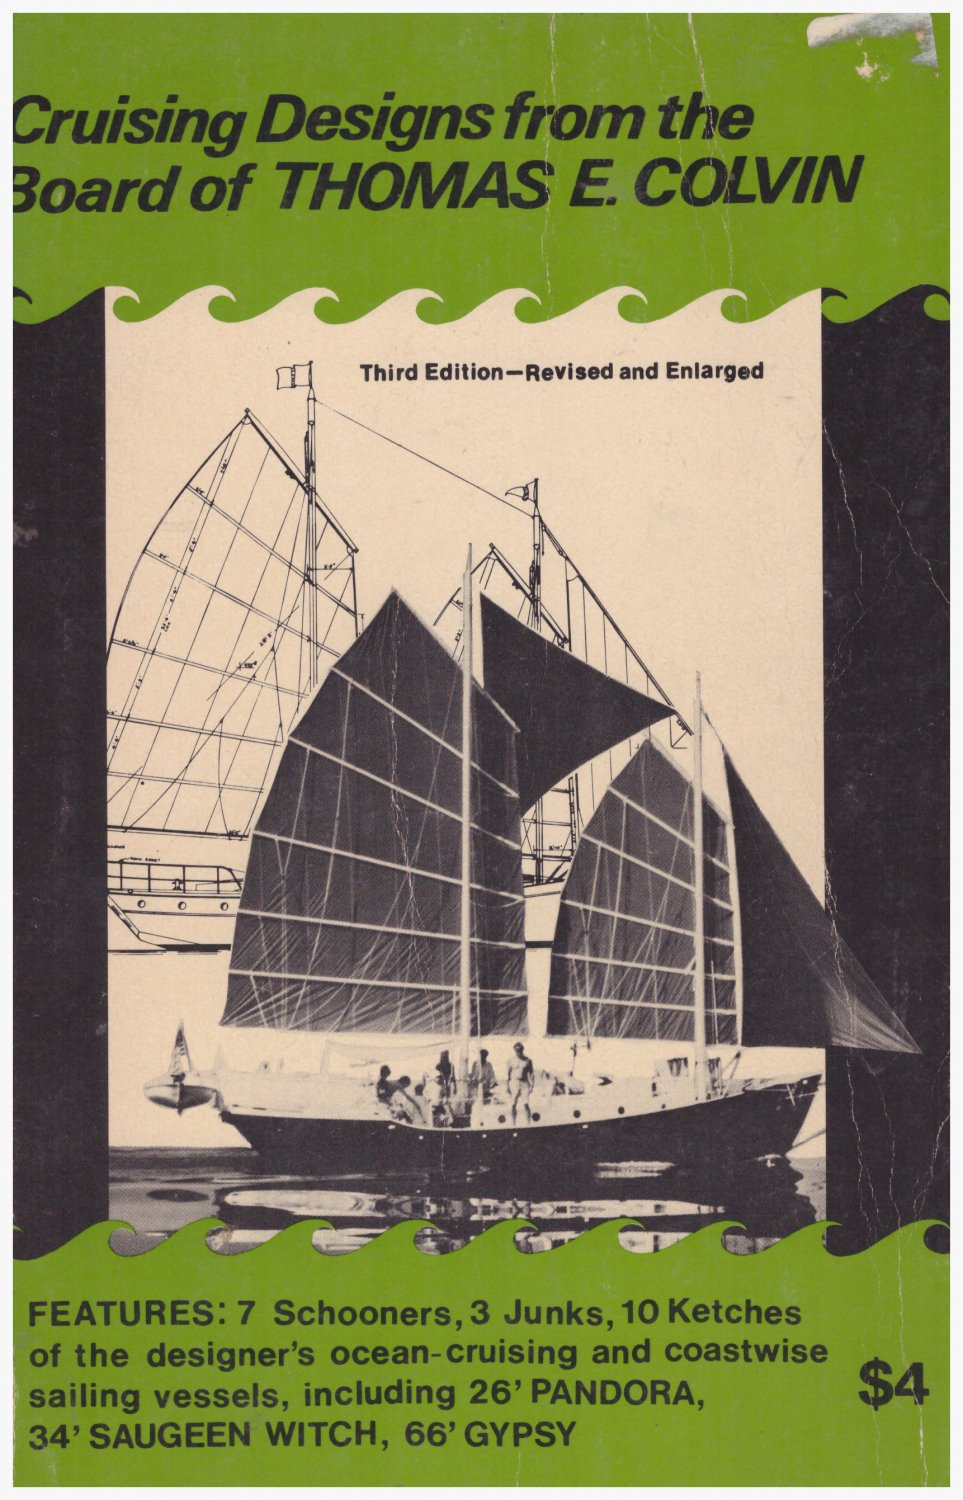 Cruising Designs from the Board of Thomas E. Colvin soft cover